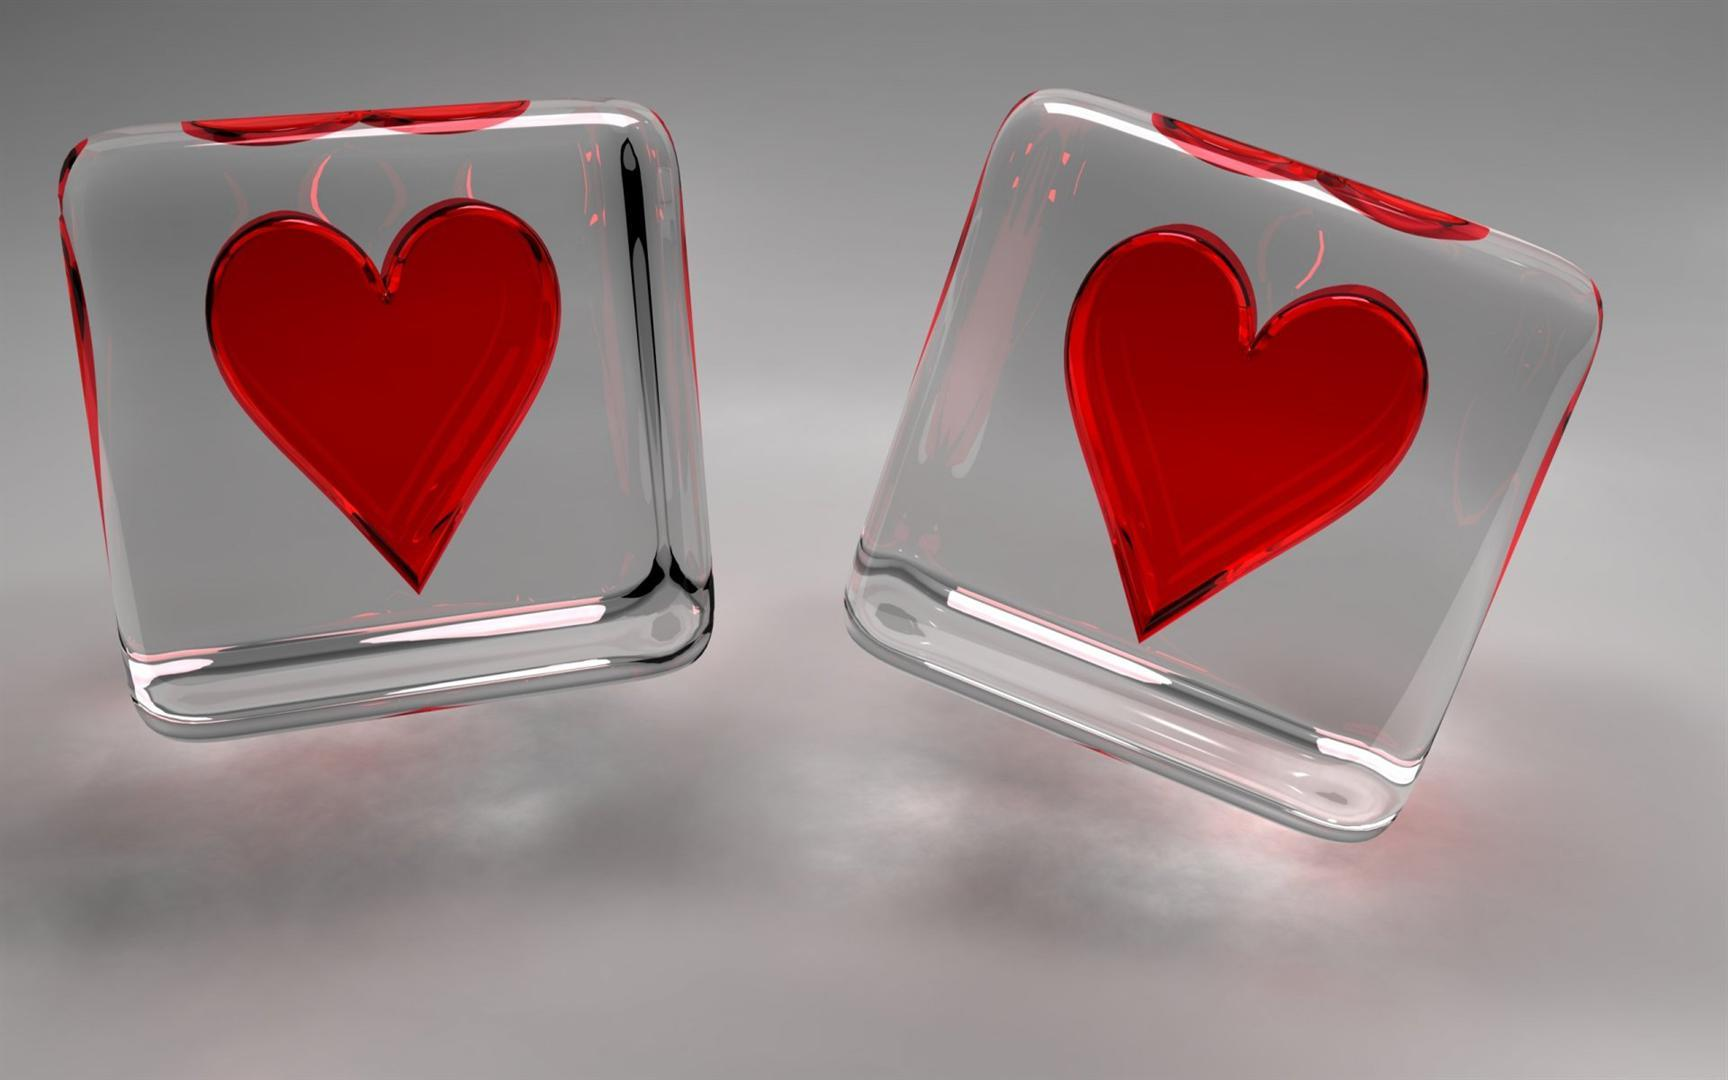 Love You Wallpaper 3d : 3d Love Wallpapers - Wallpaper cave